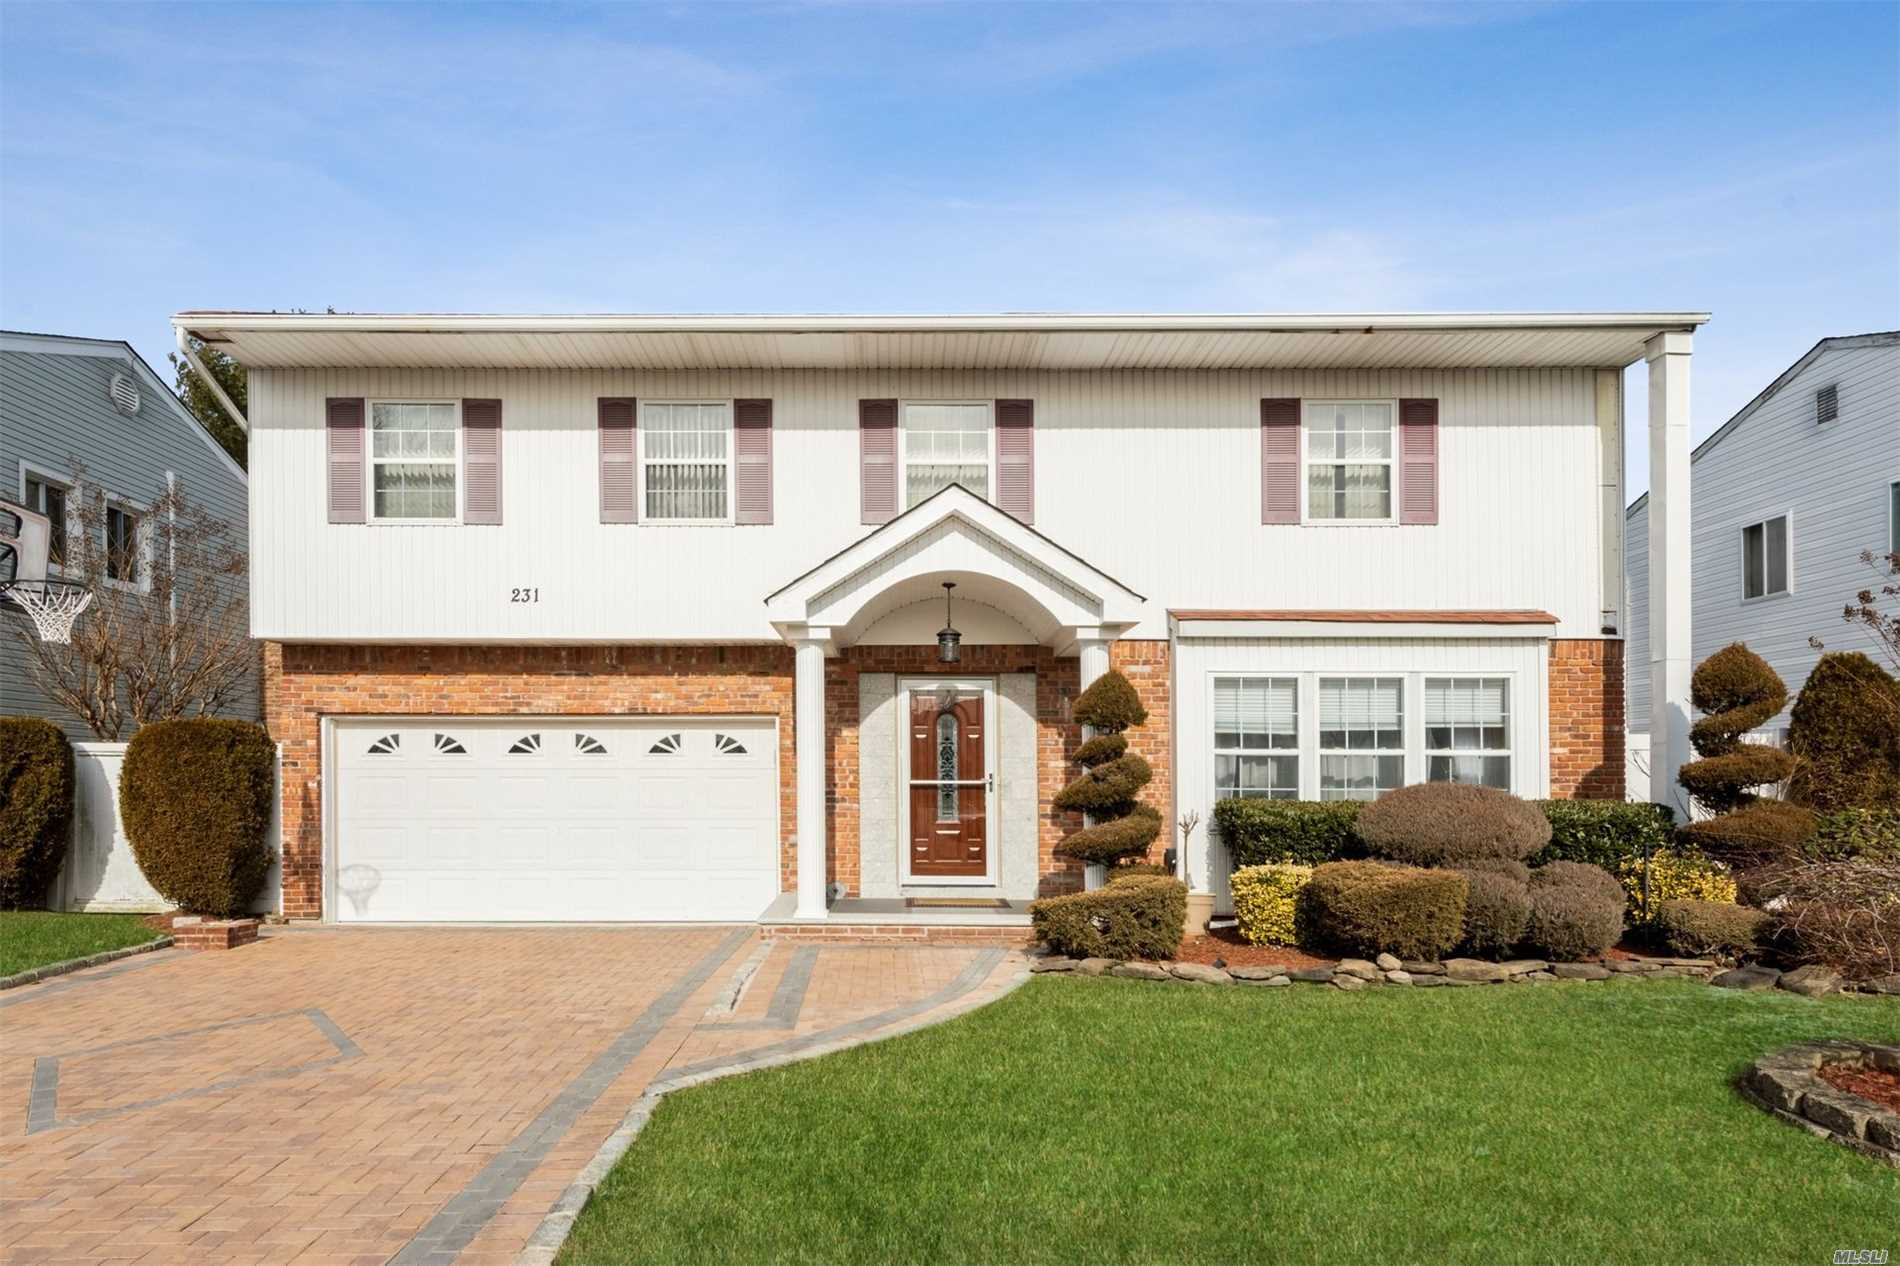 Spacious & Gracious, Diamond Colonial, Huge Eik, 4/5 Bdr. Tall Basement, Impressive Master Bedroom With Walk-In Closet. 2 Skylights (1st Floor & 2nd Floor), Recently Updated Granite Counter In Kitchen. Deck In Backyard Has Awning. Roof Is 2 Yrs Old. New Driveway.